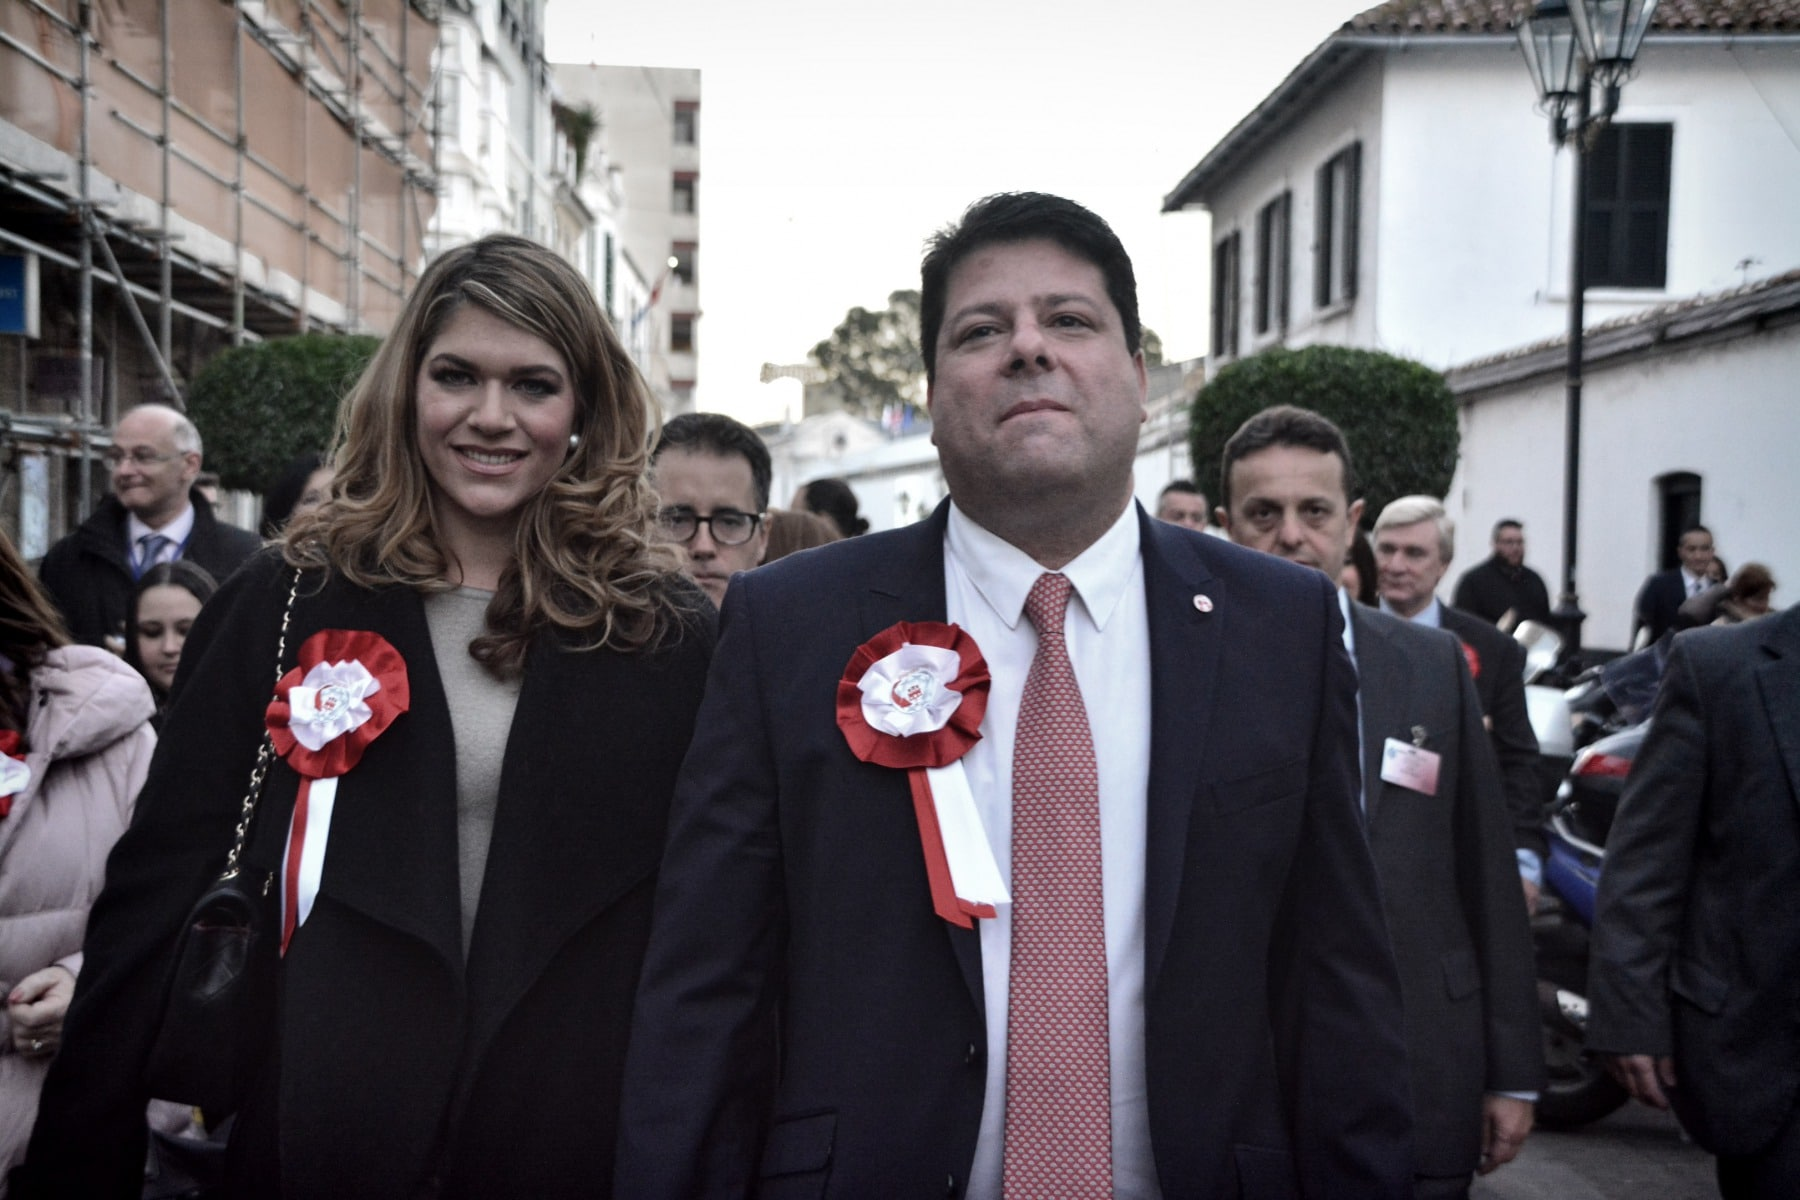 Gibraltar - 27th November 2015 - As Gibraltar woke up for work, John Macintosh Hall closed the count to the general election placing the GSLP/Liberal Alliance as the party to form Government.With an overall mayority 68.03% against the GSD's 31.37, the GSLP/Liberals recorded an overwhelming victory which once again sees Fabian Picardo as the Chief Minister of Gibraltar.The results were: -PICARDO, Fabian Raymond 10852 GARCIA, Joseph John 10661 CORTES, John Emmanuel 10529 LICUDI, Gilbert Horace 10379 ISOLA , Albert Joseph 10313 COSTA, Neil Francis 10048 SACRAMENTO, Samantha Jane 9822 LINARES, Steven Ernest 9690BALBAN, Paul John 9511 BOSSANO, Joseph John 9145FEETHAM, Daniel Anthony 5054 HASSAN NAHON, Marlene Dinah Esther 4892 PHILLIPS, Elliott John 4784 REYES, Edwin Joseph 4766 CLINTON, Roy Mark 4733 HAMMOND, Trevor Nicholas 4578LLAMAS, Lawrence Francis 4565 VASQUEZ, Robert Michael 4535 WHITE, Christopher George 4324 KARNANI-SANTOS, Kim Sylvia 4314